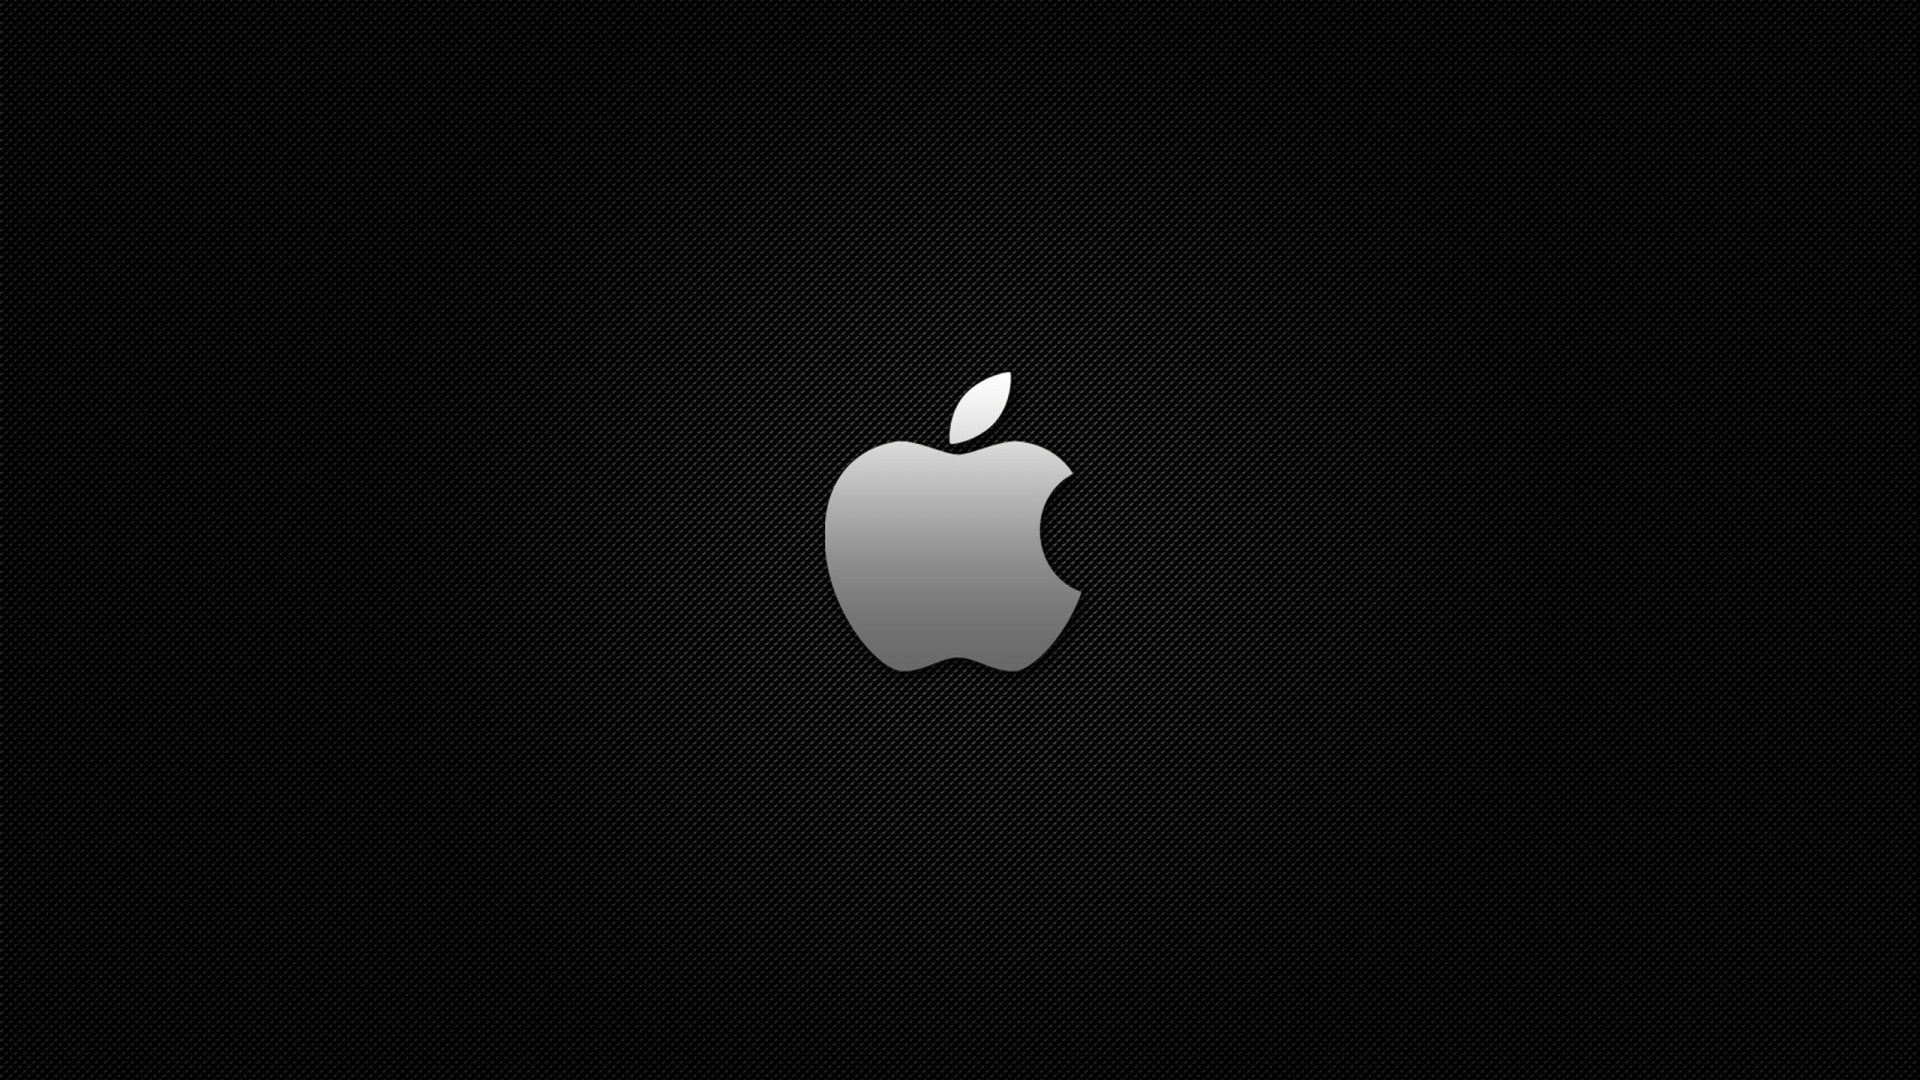 370 Wallpapers Para Iphone: Black Apple Logo Wallpapers HD Wallpaper